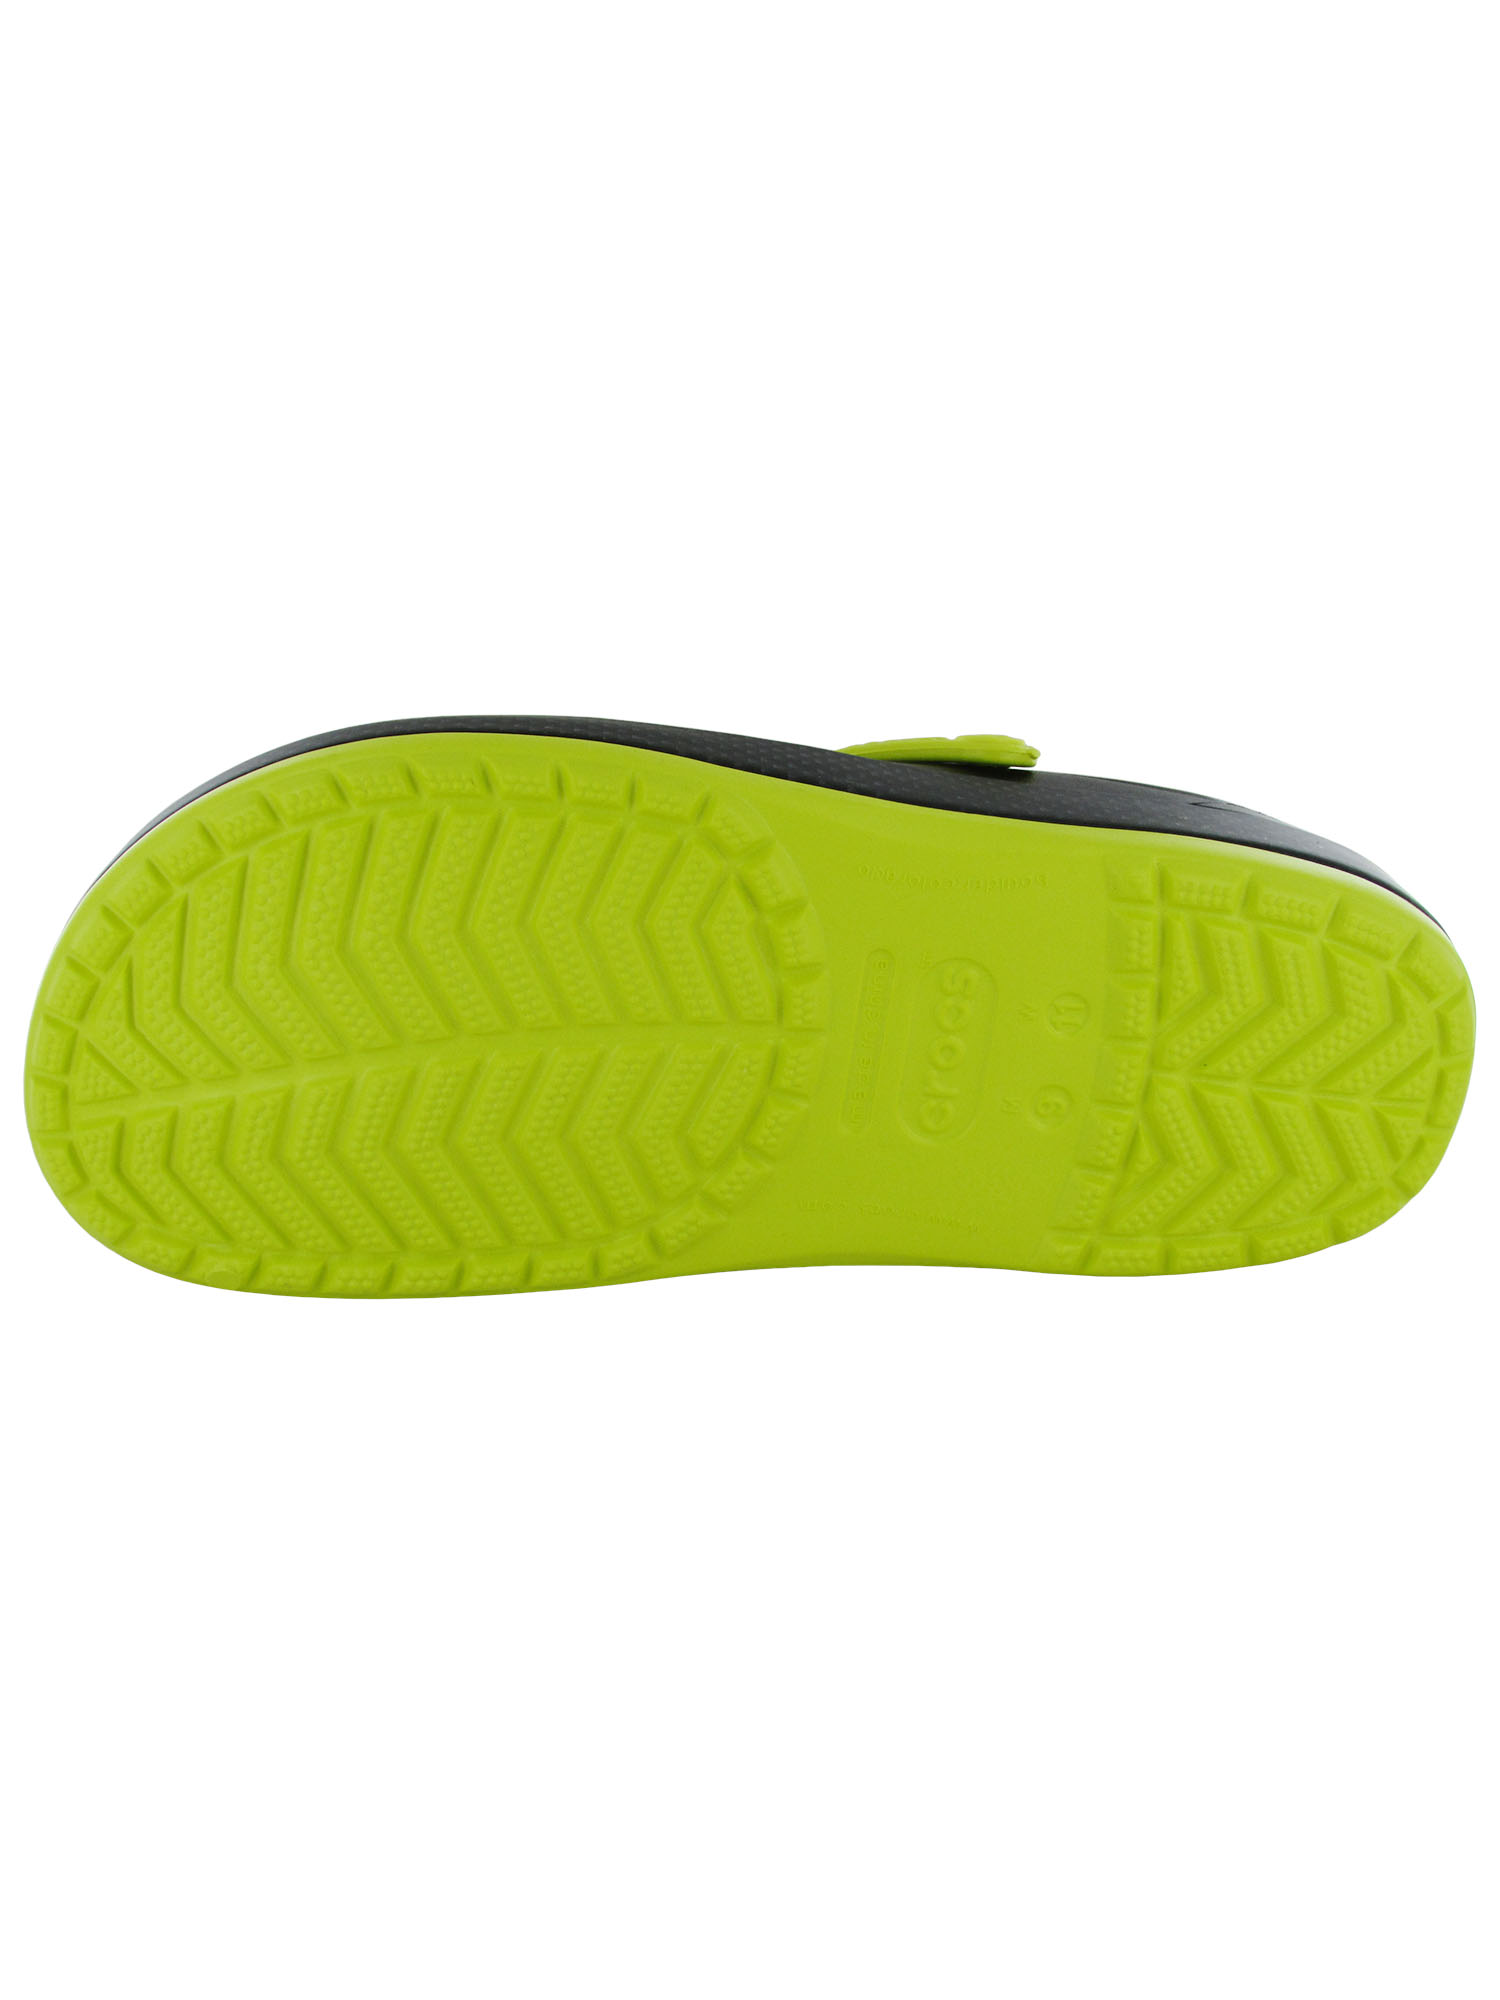 Crocs-Crocband-Carbon-Graphic-Clog thumbnail 6